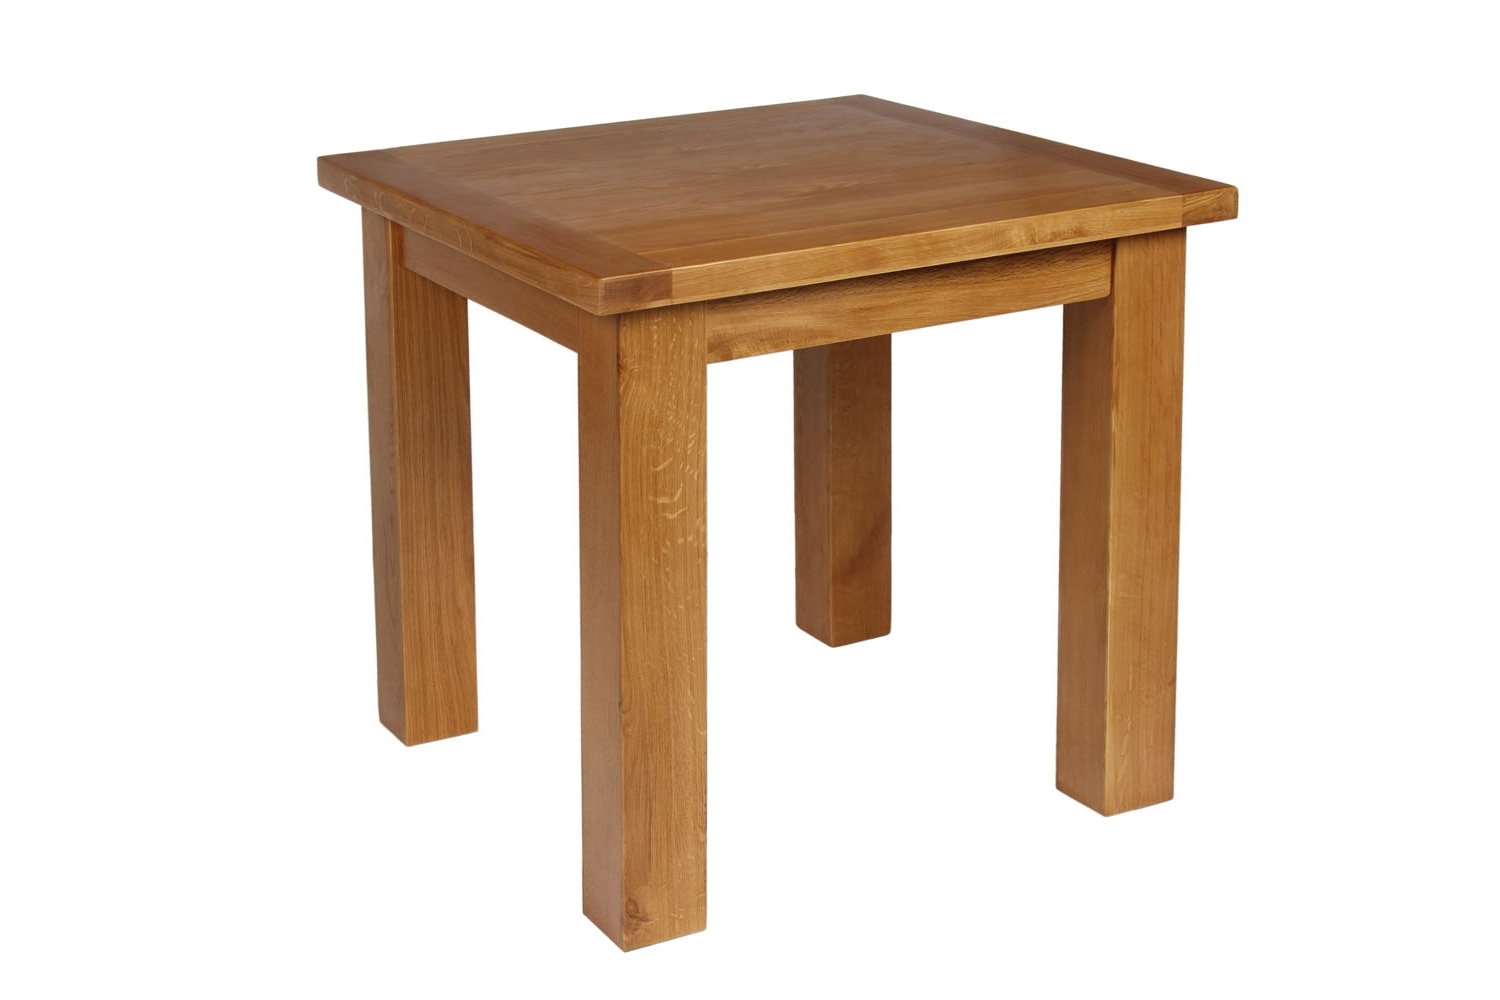 Square Oak Dining Tables Inside Well Known Small Square Oak Dining Table – Free Delivery (View 18 of 25)